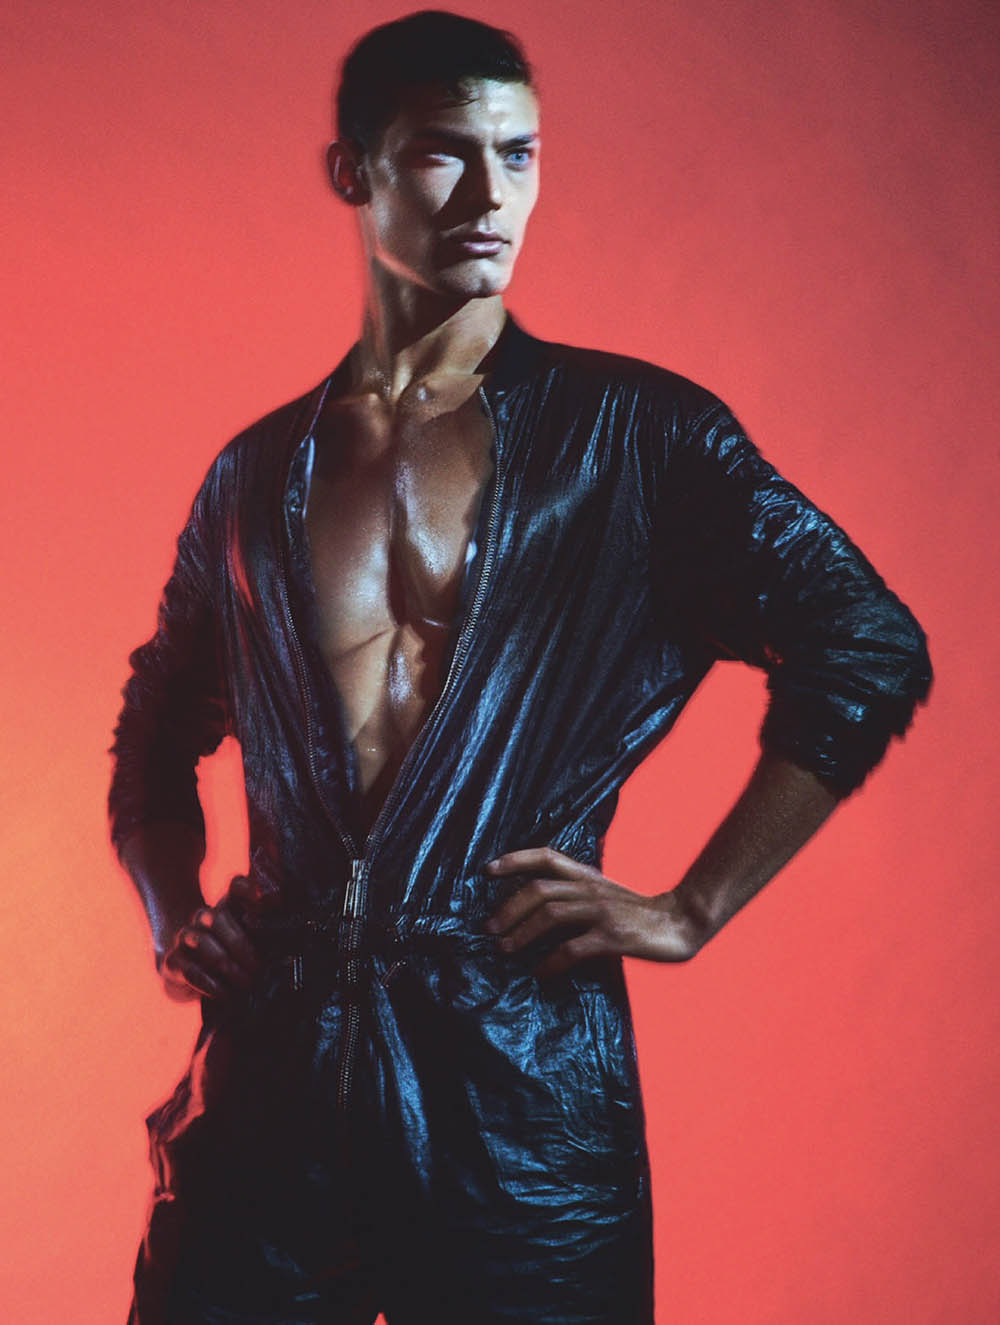 Jacob Hankin by Olivier Yoan for Attitude Magazine May 2019